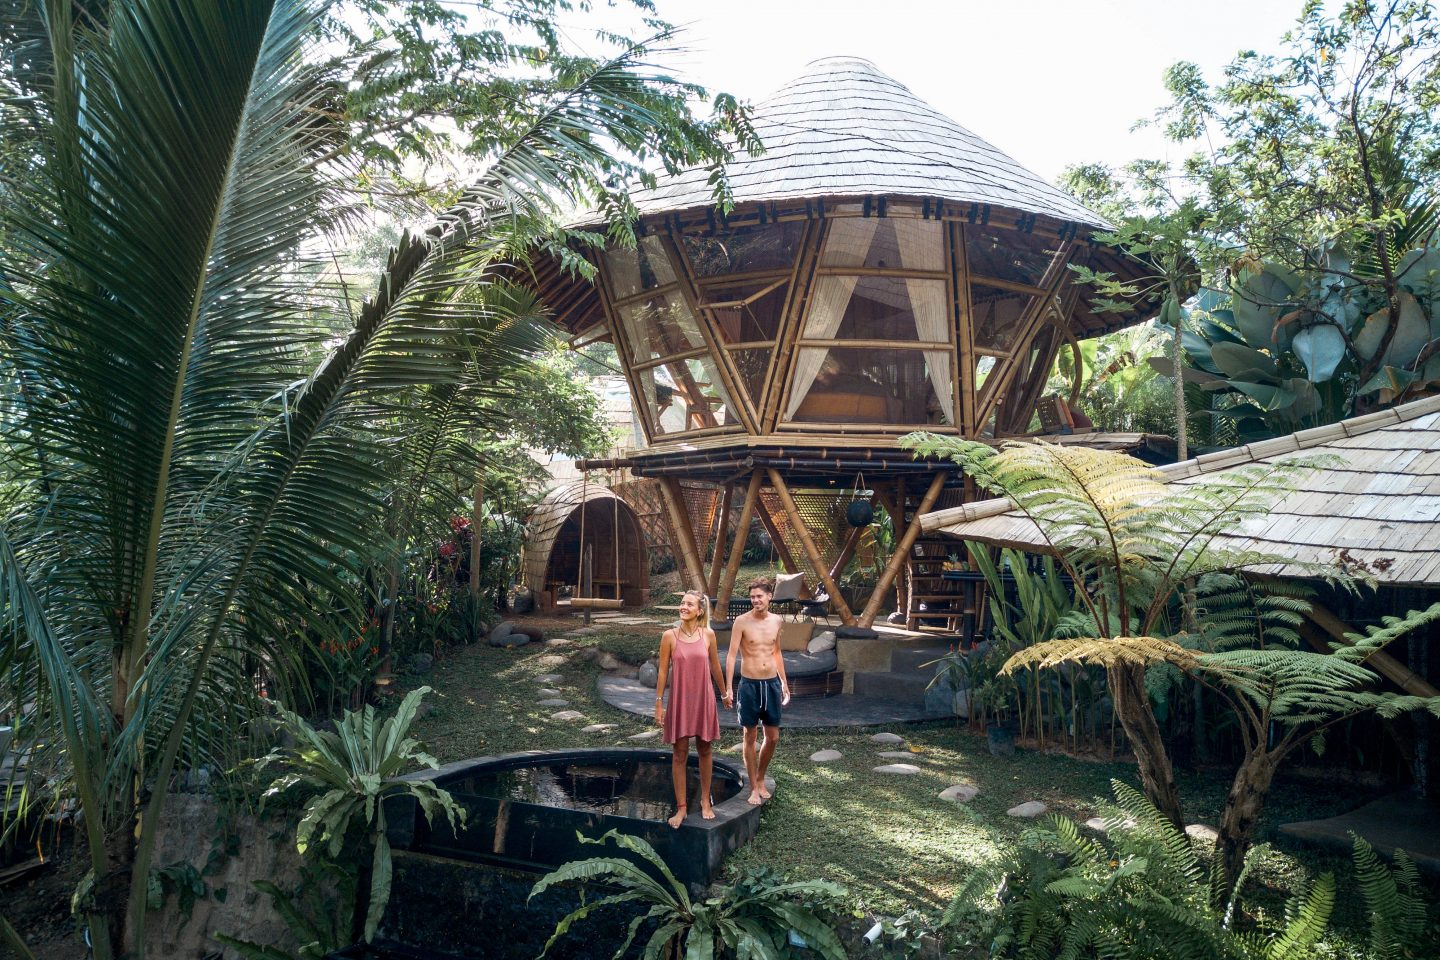 Hideout Beehive – A Bamboo Home At Hideout Bali